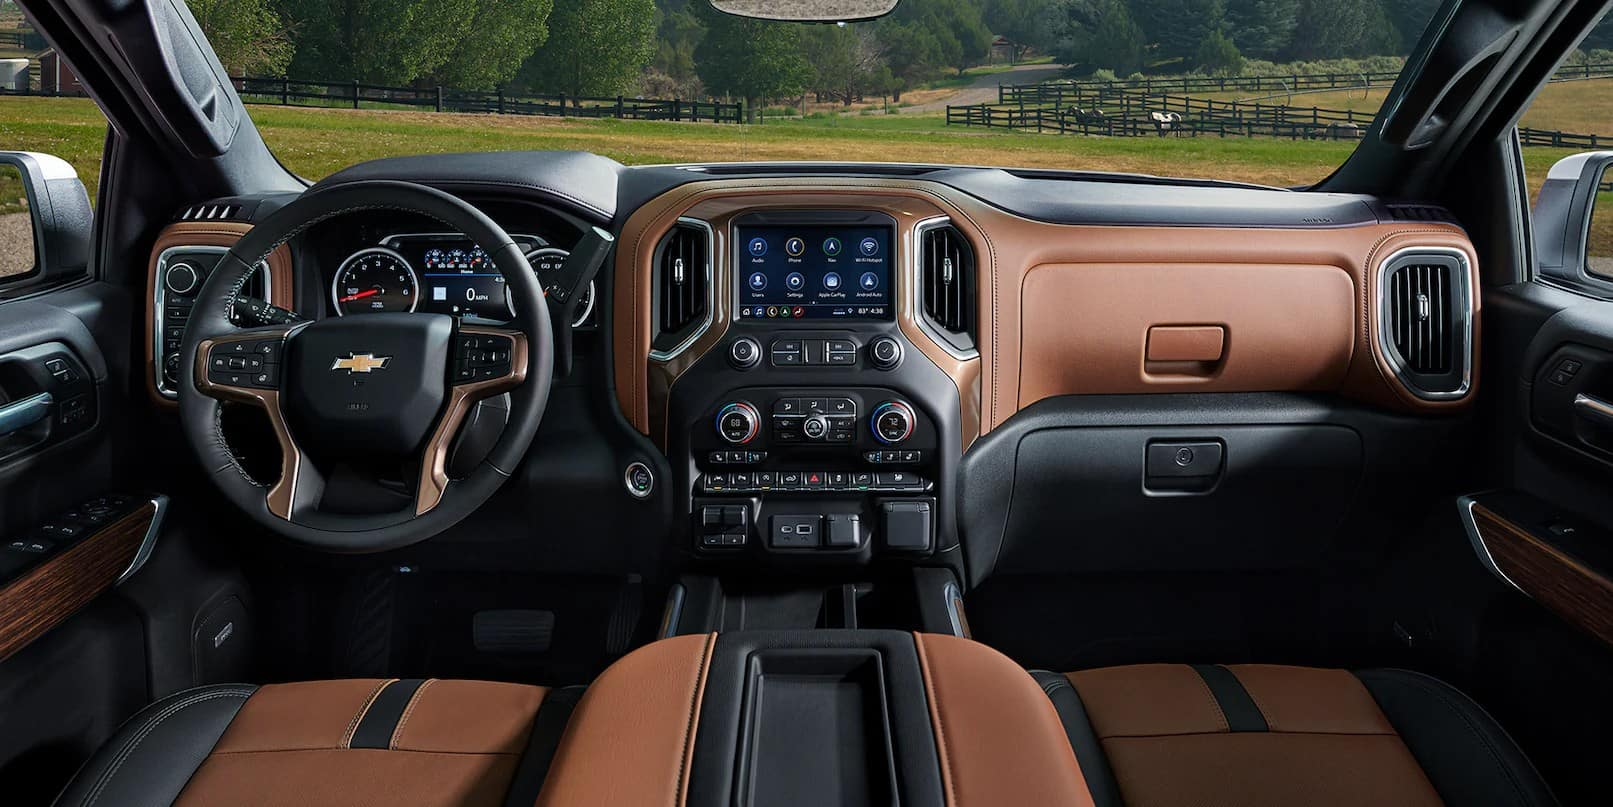 picture of chevrolet silverado 2021 leather interior for sale in Hooksett New Hampshire